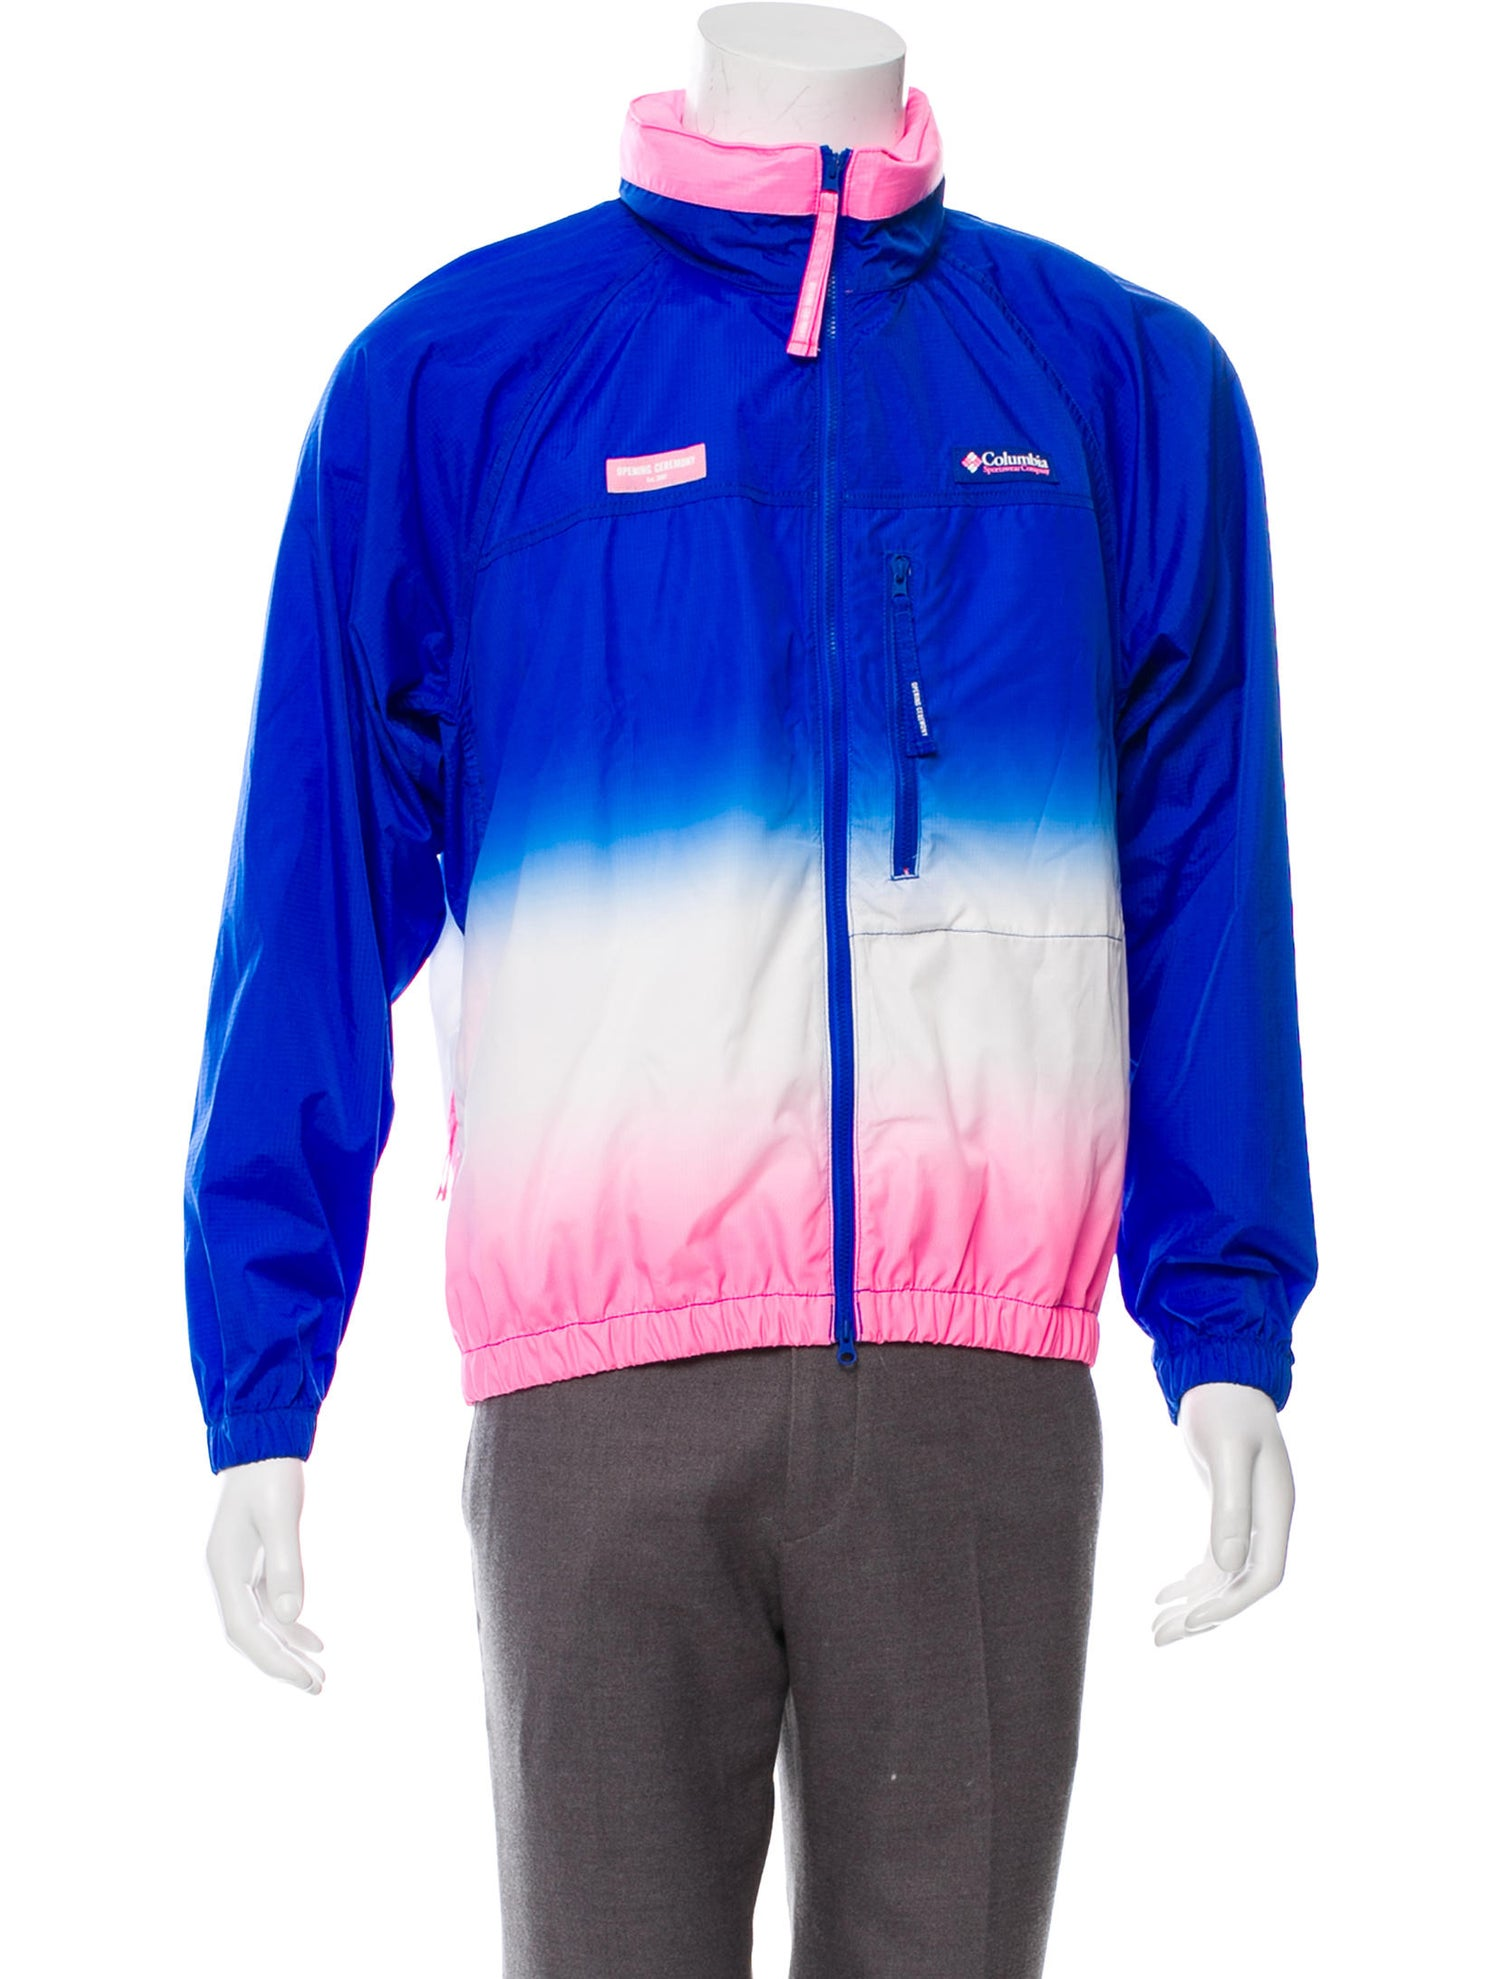 Sawtooth Windbreaker Parka w/ Tags - Columbia for Opening Ceremony, $140